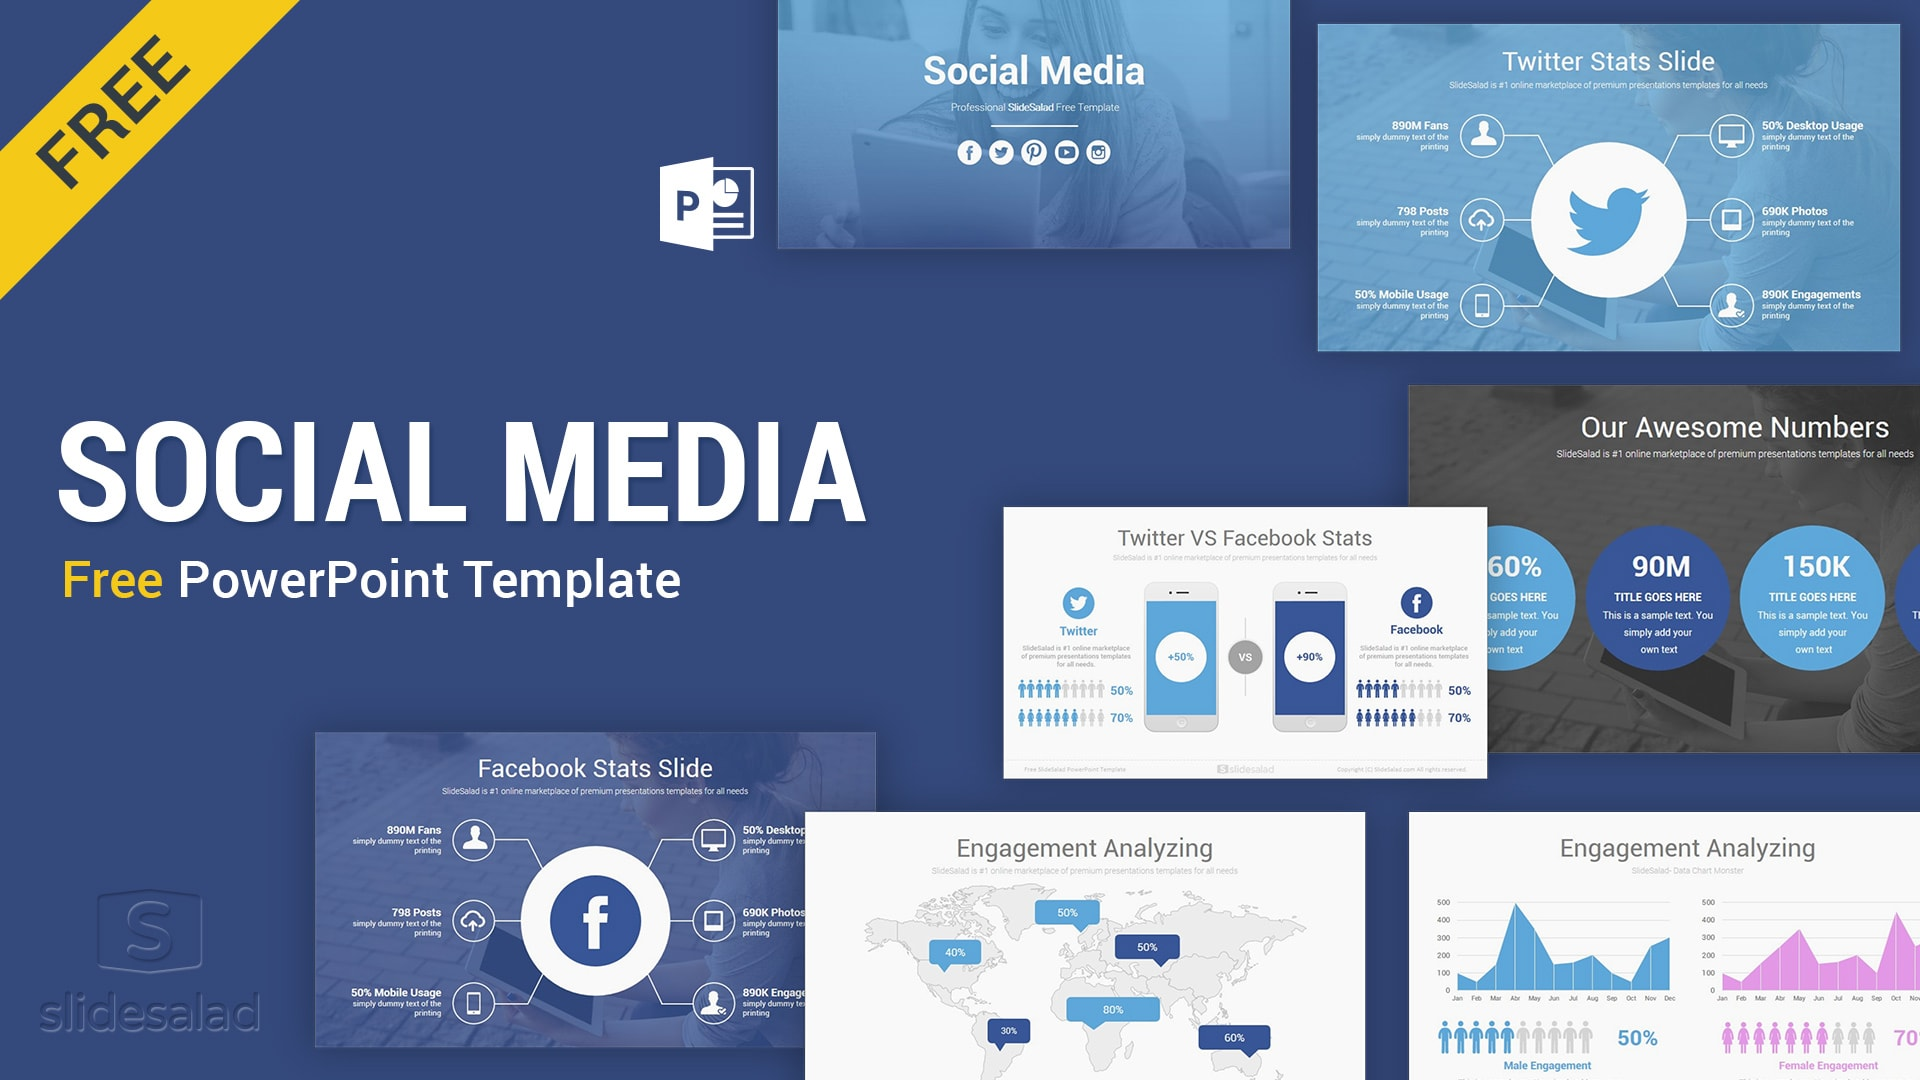 Social Media Free PowerPoint Template PPT Slides – Top Rated Free Social Media Planning PPT Template